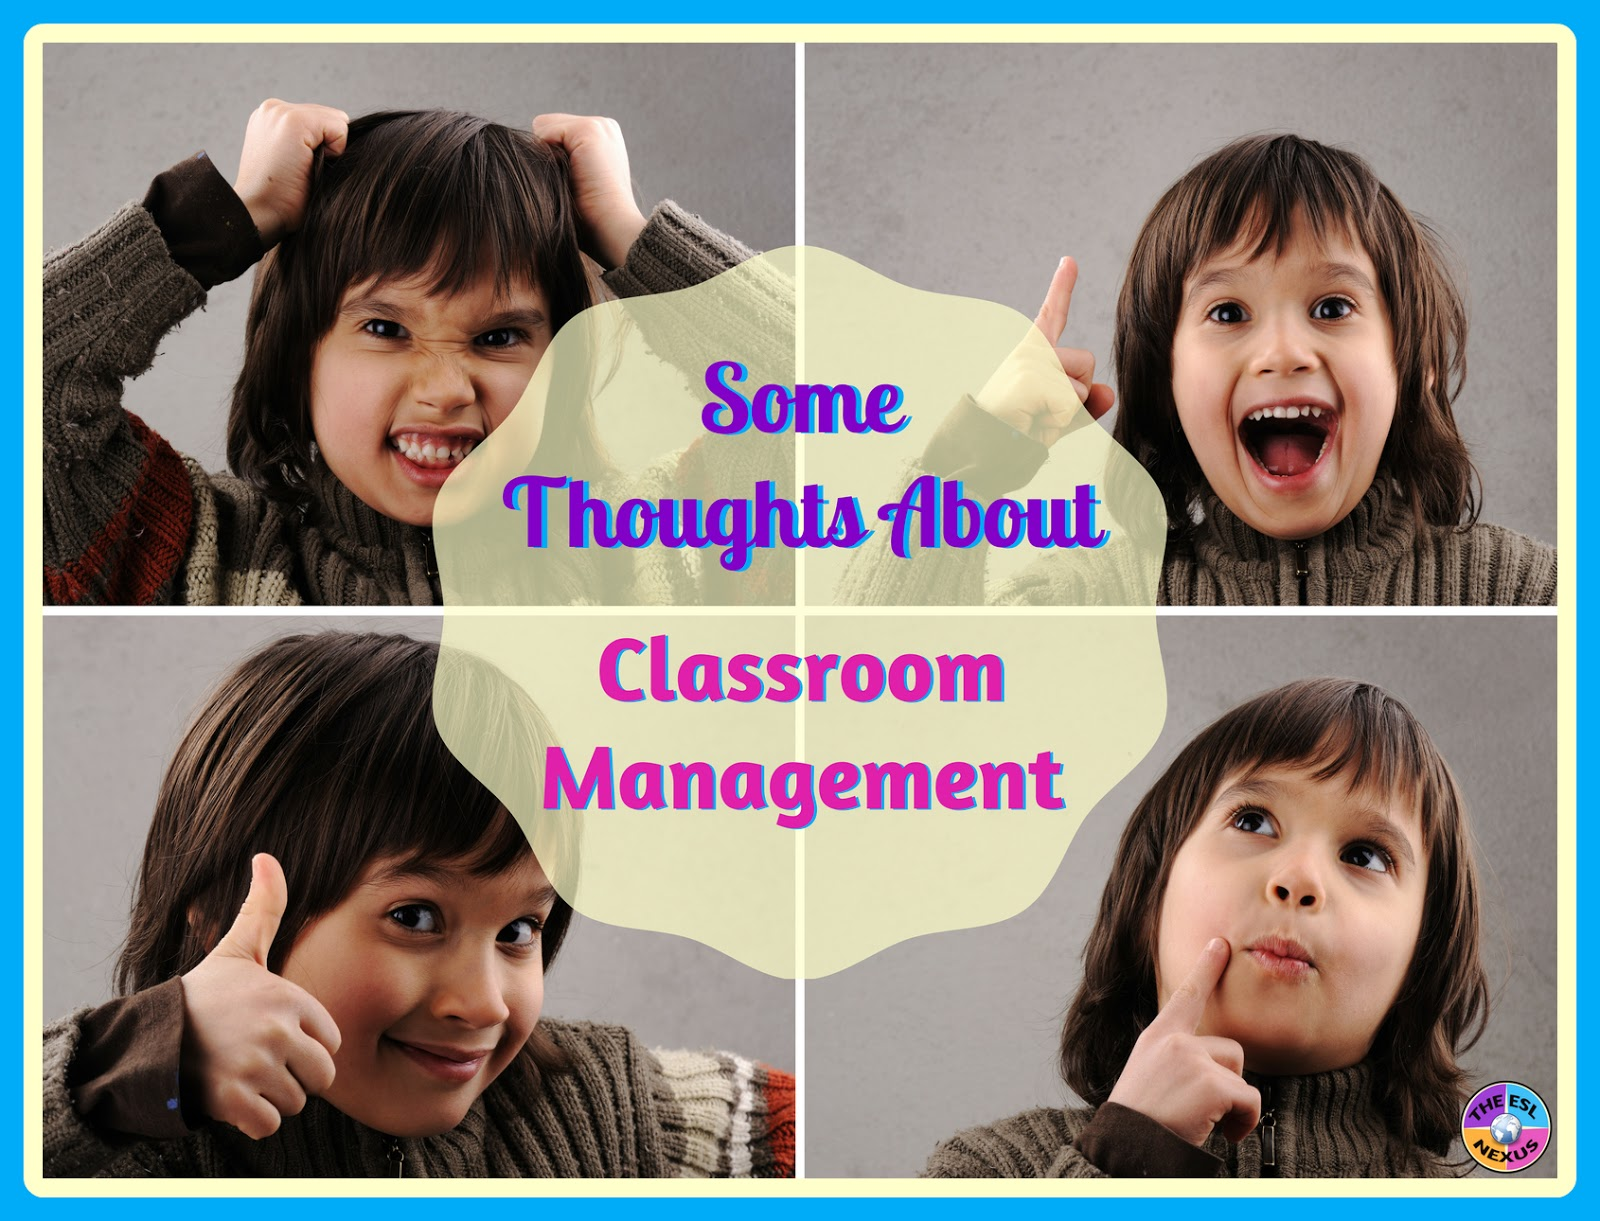 Some thoughts about classroom management